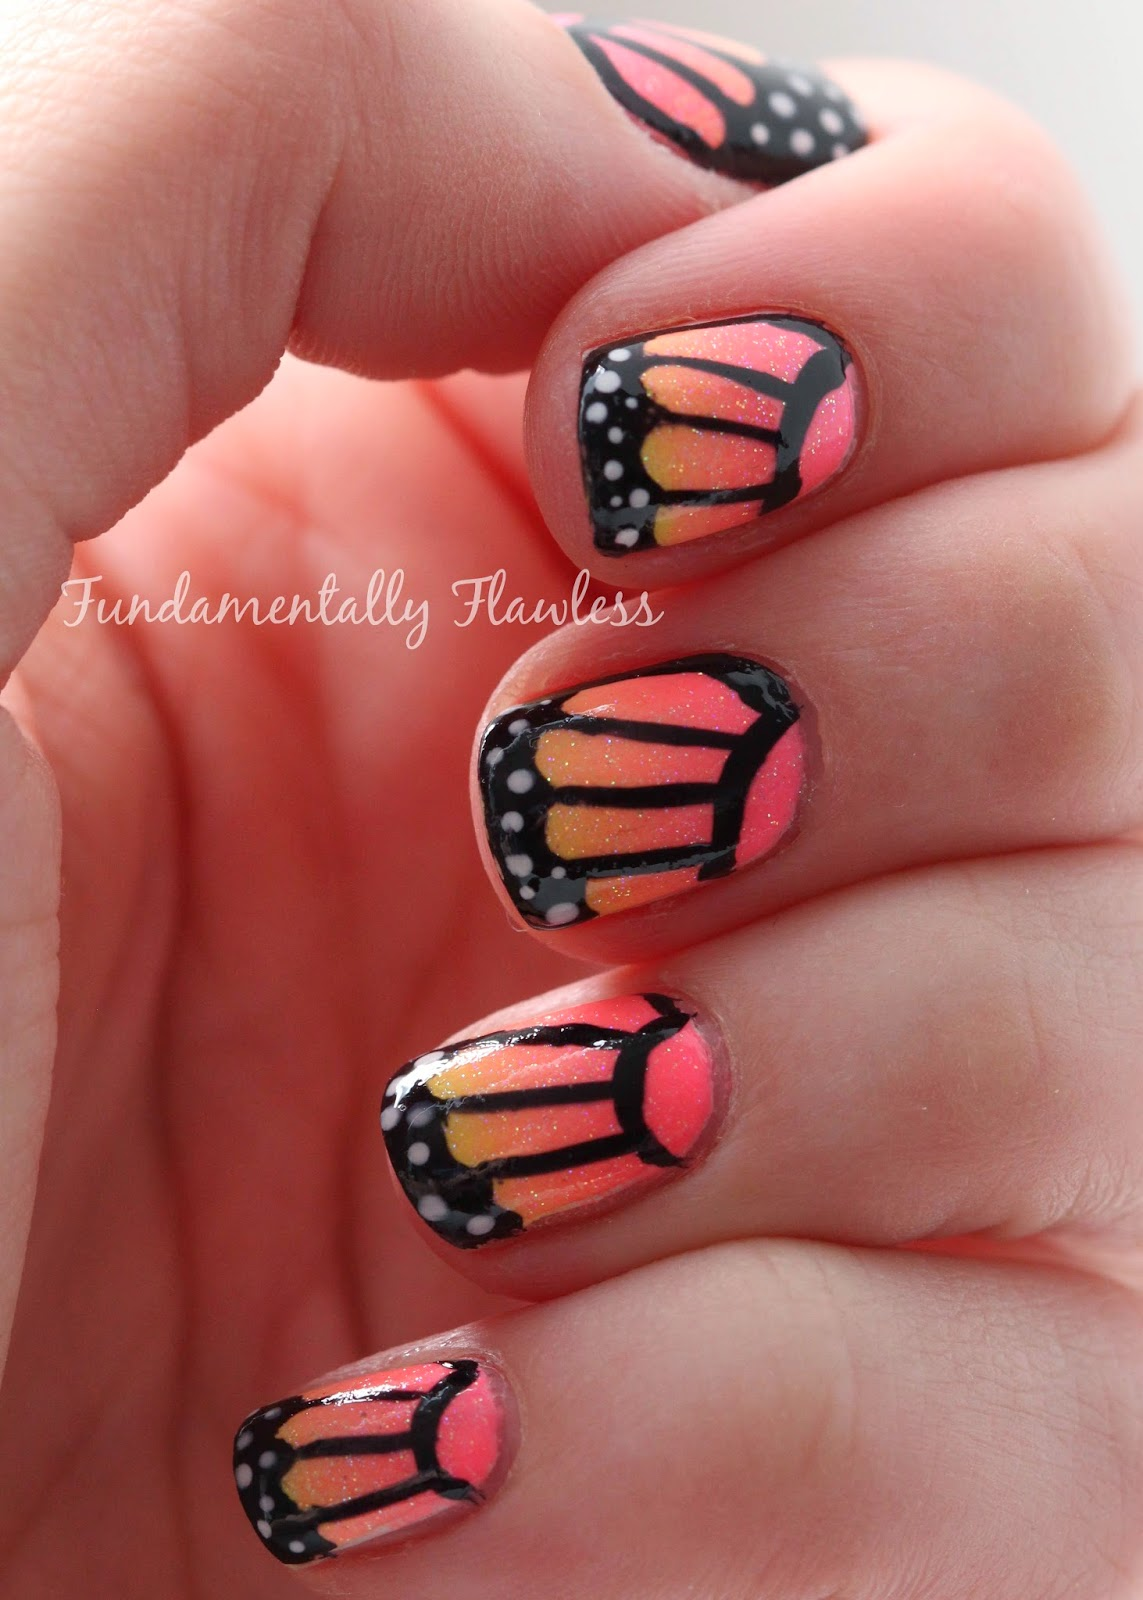 Fundamentally Flawless Butterfly Wing Nail Art With Models Own Polish For Tans Neon Gradient